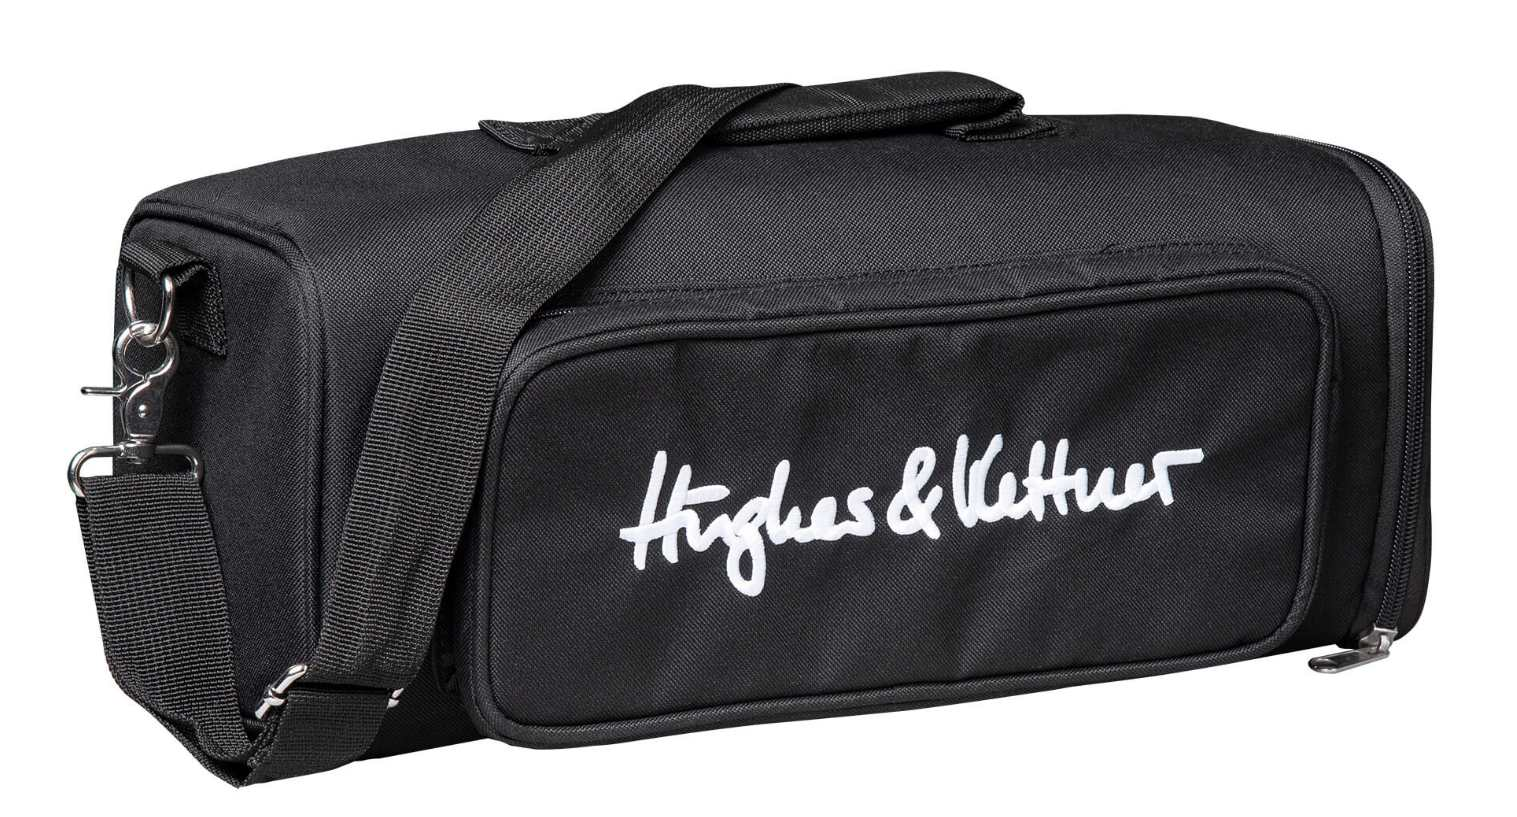 Hughes & Kettner Softbag BlackSpirit 200